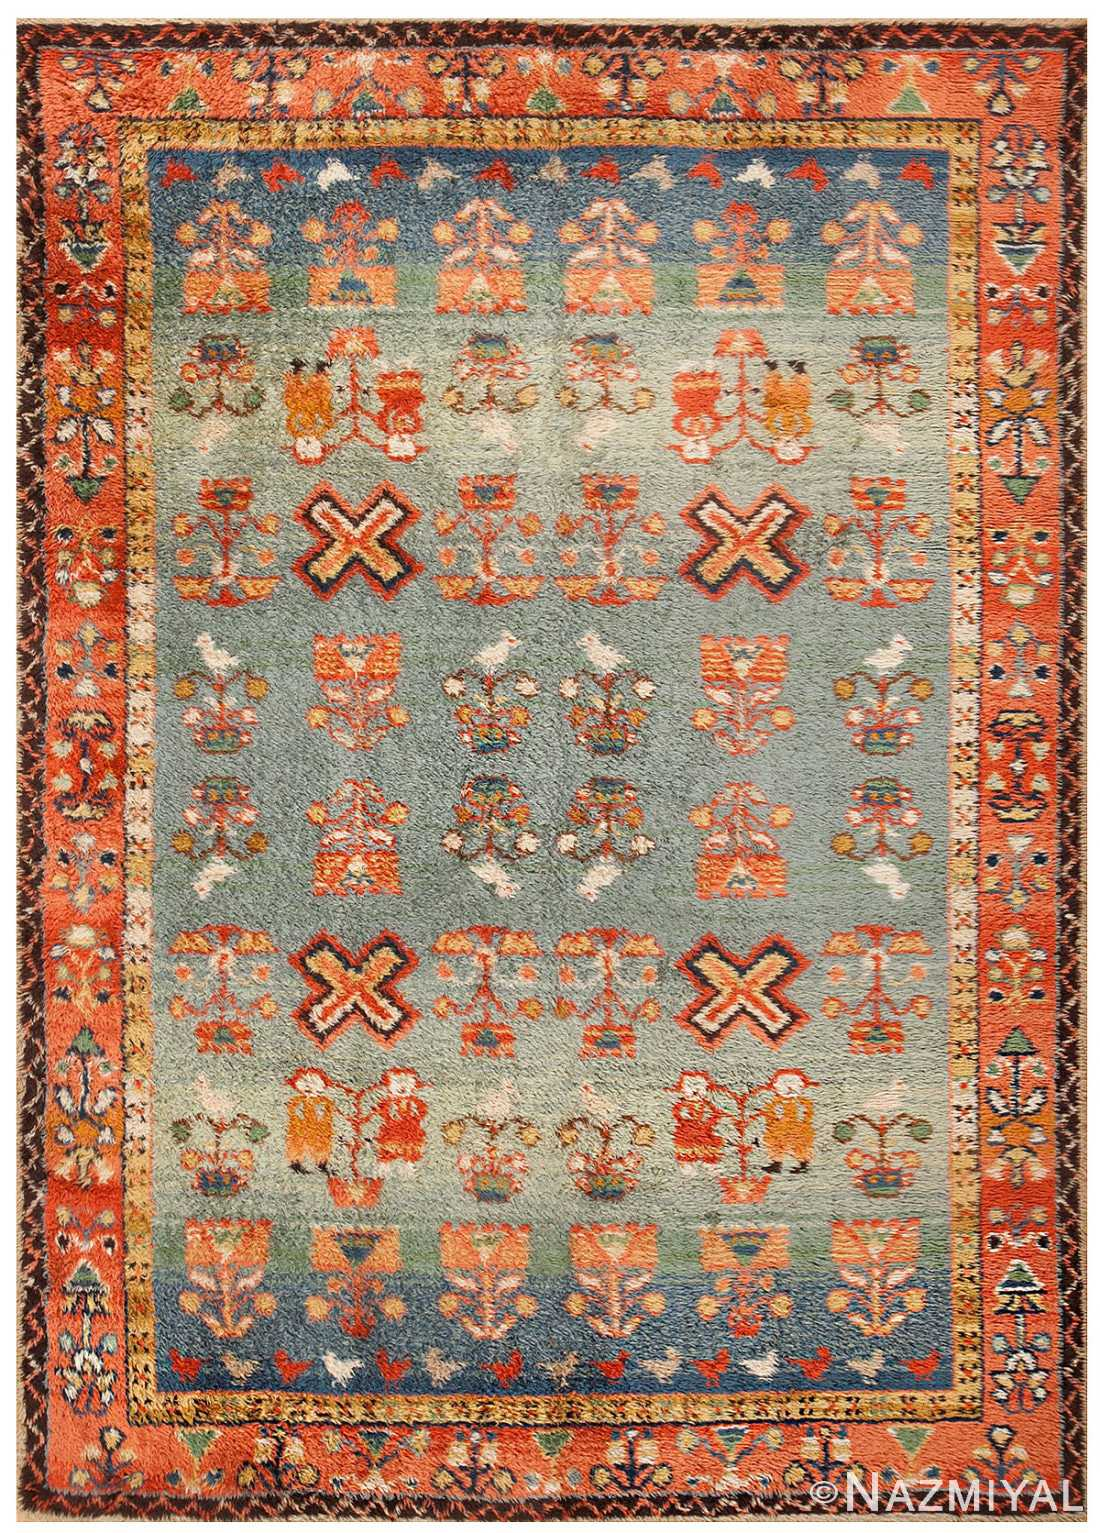 Vintage German Shag Rug 48556 By Nazmiyal Antique Rugs